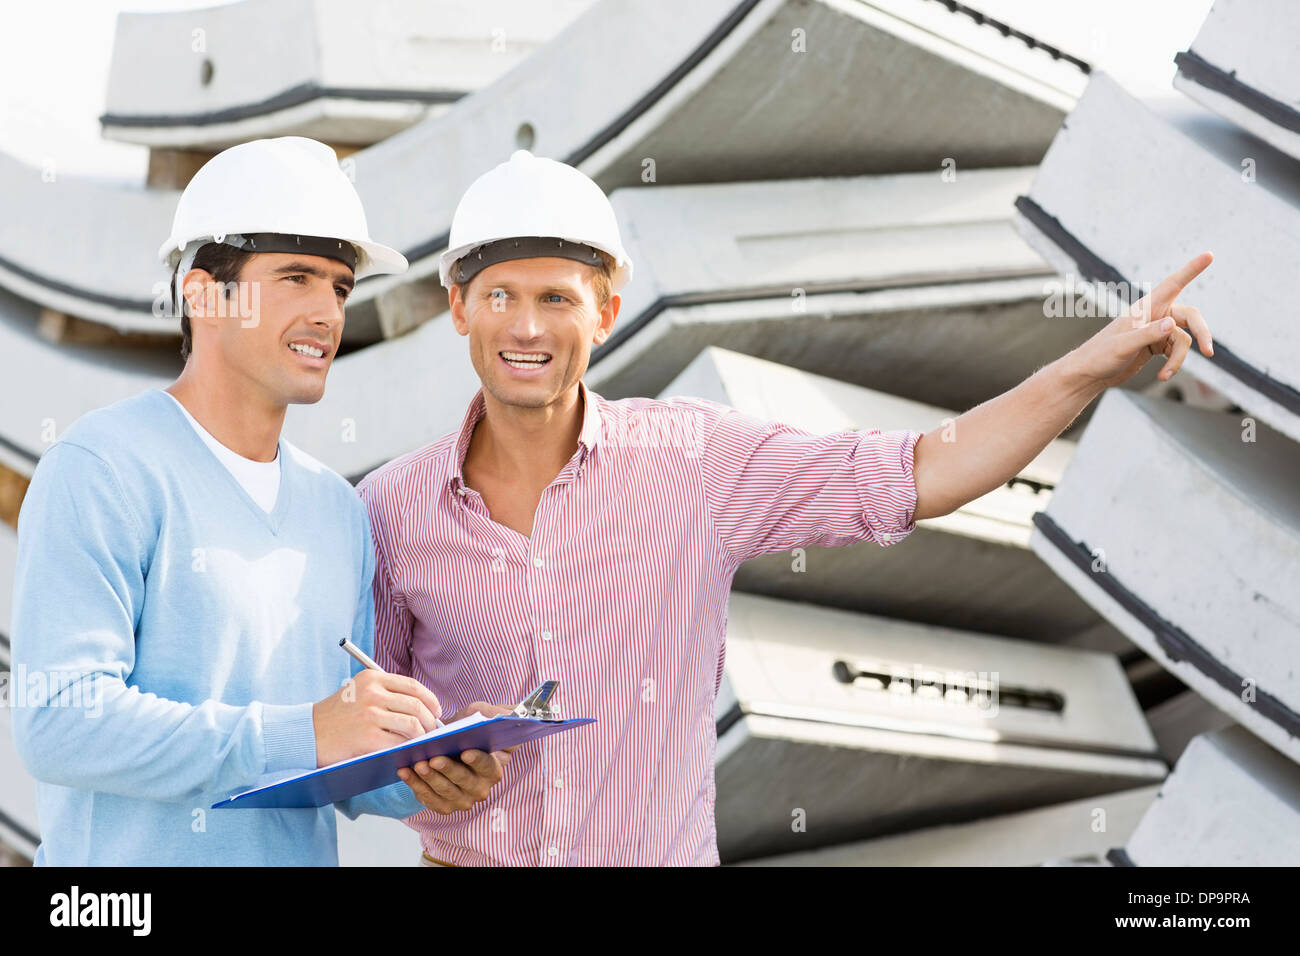 Smiling architects inspecting stock at site - Stock Image